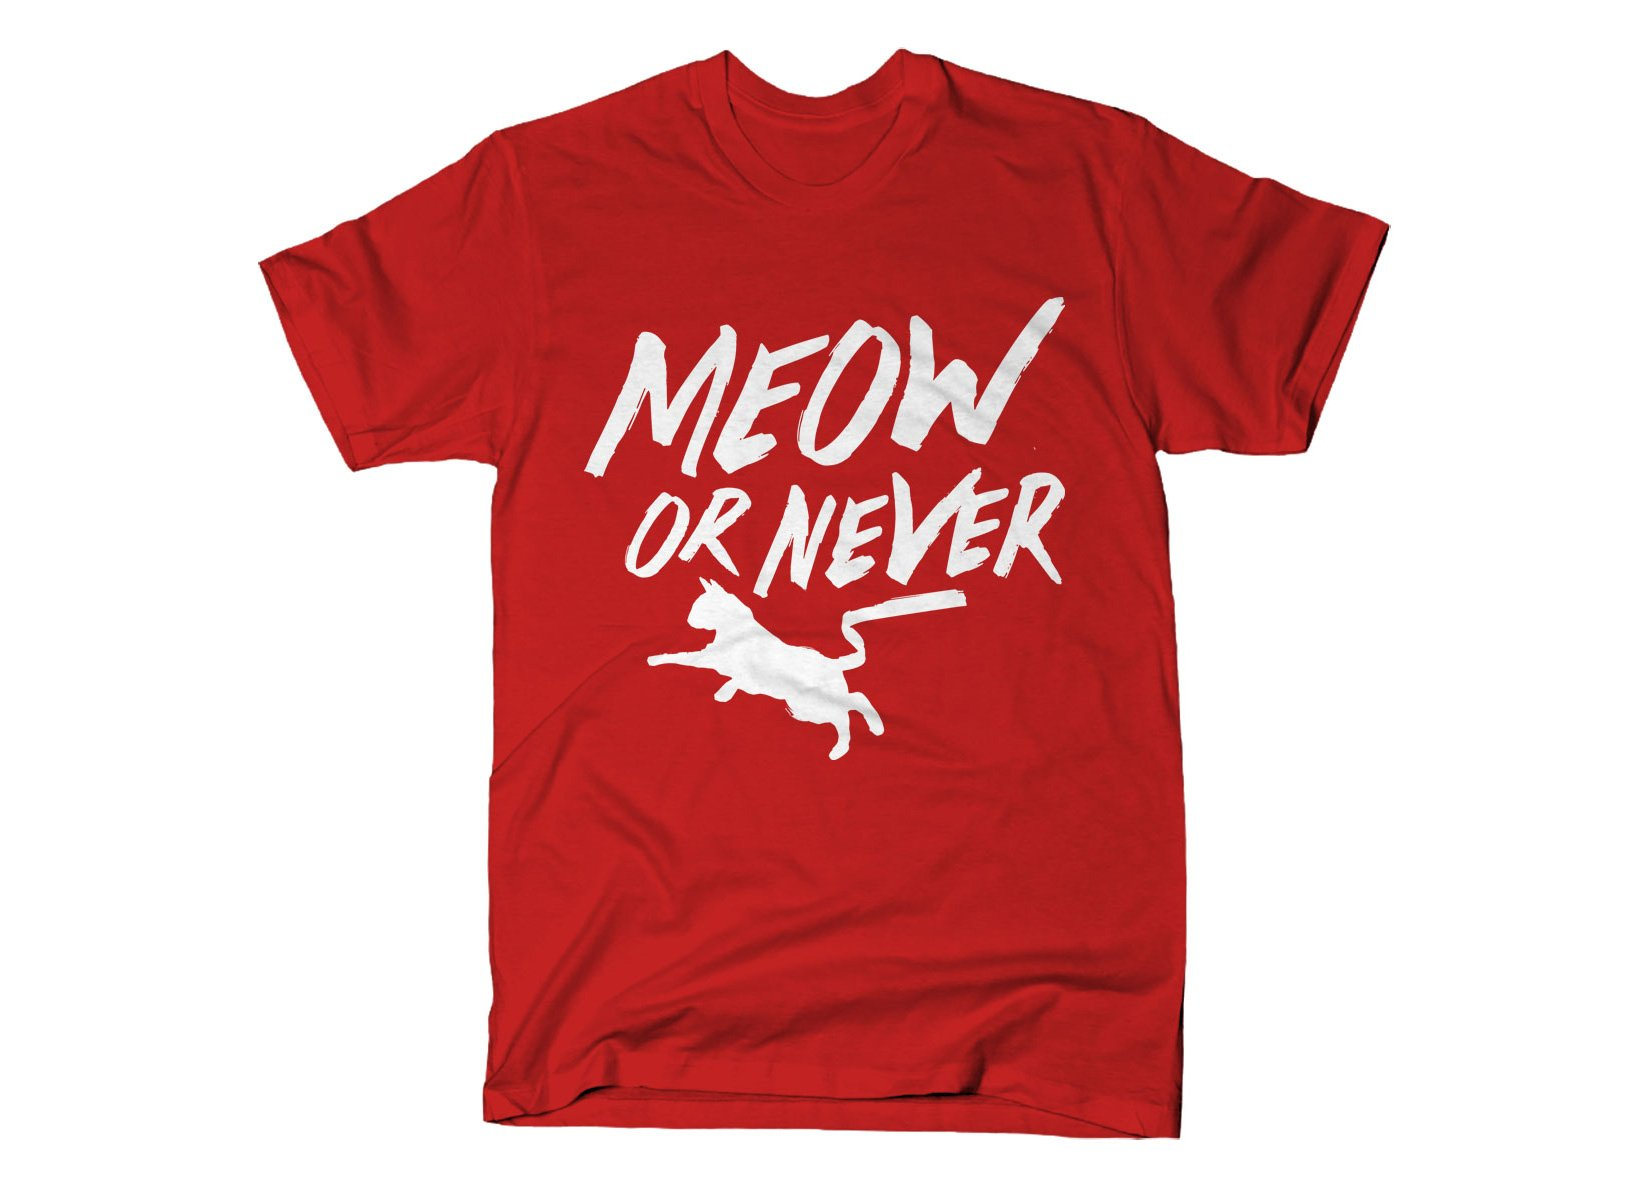 Meow Or Never on Mens T-Shirt